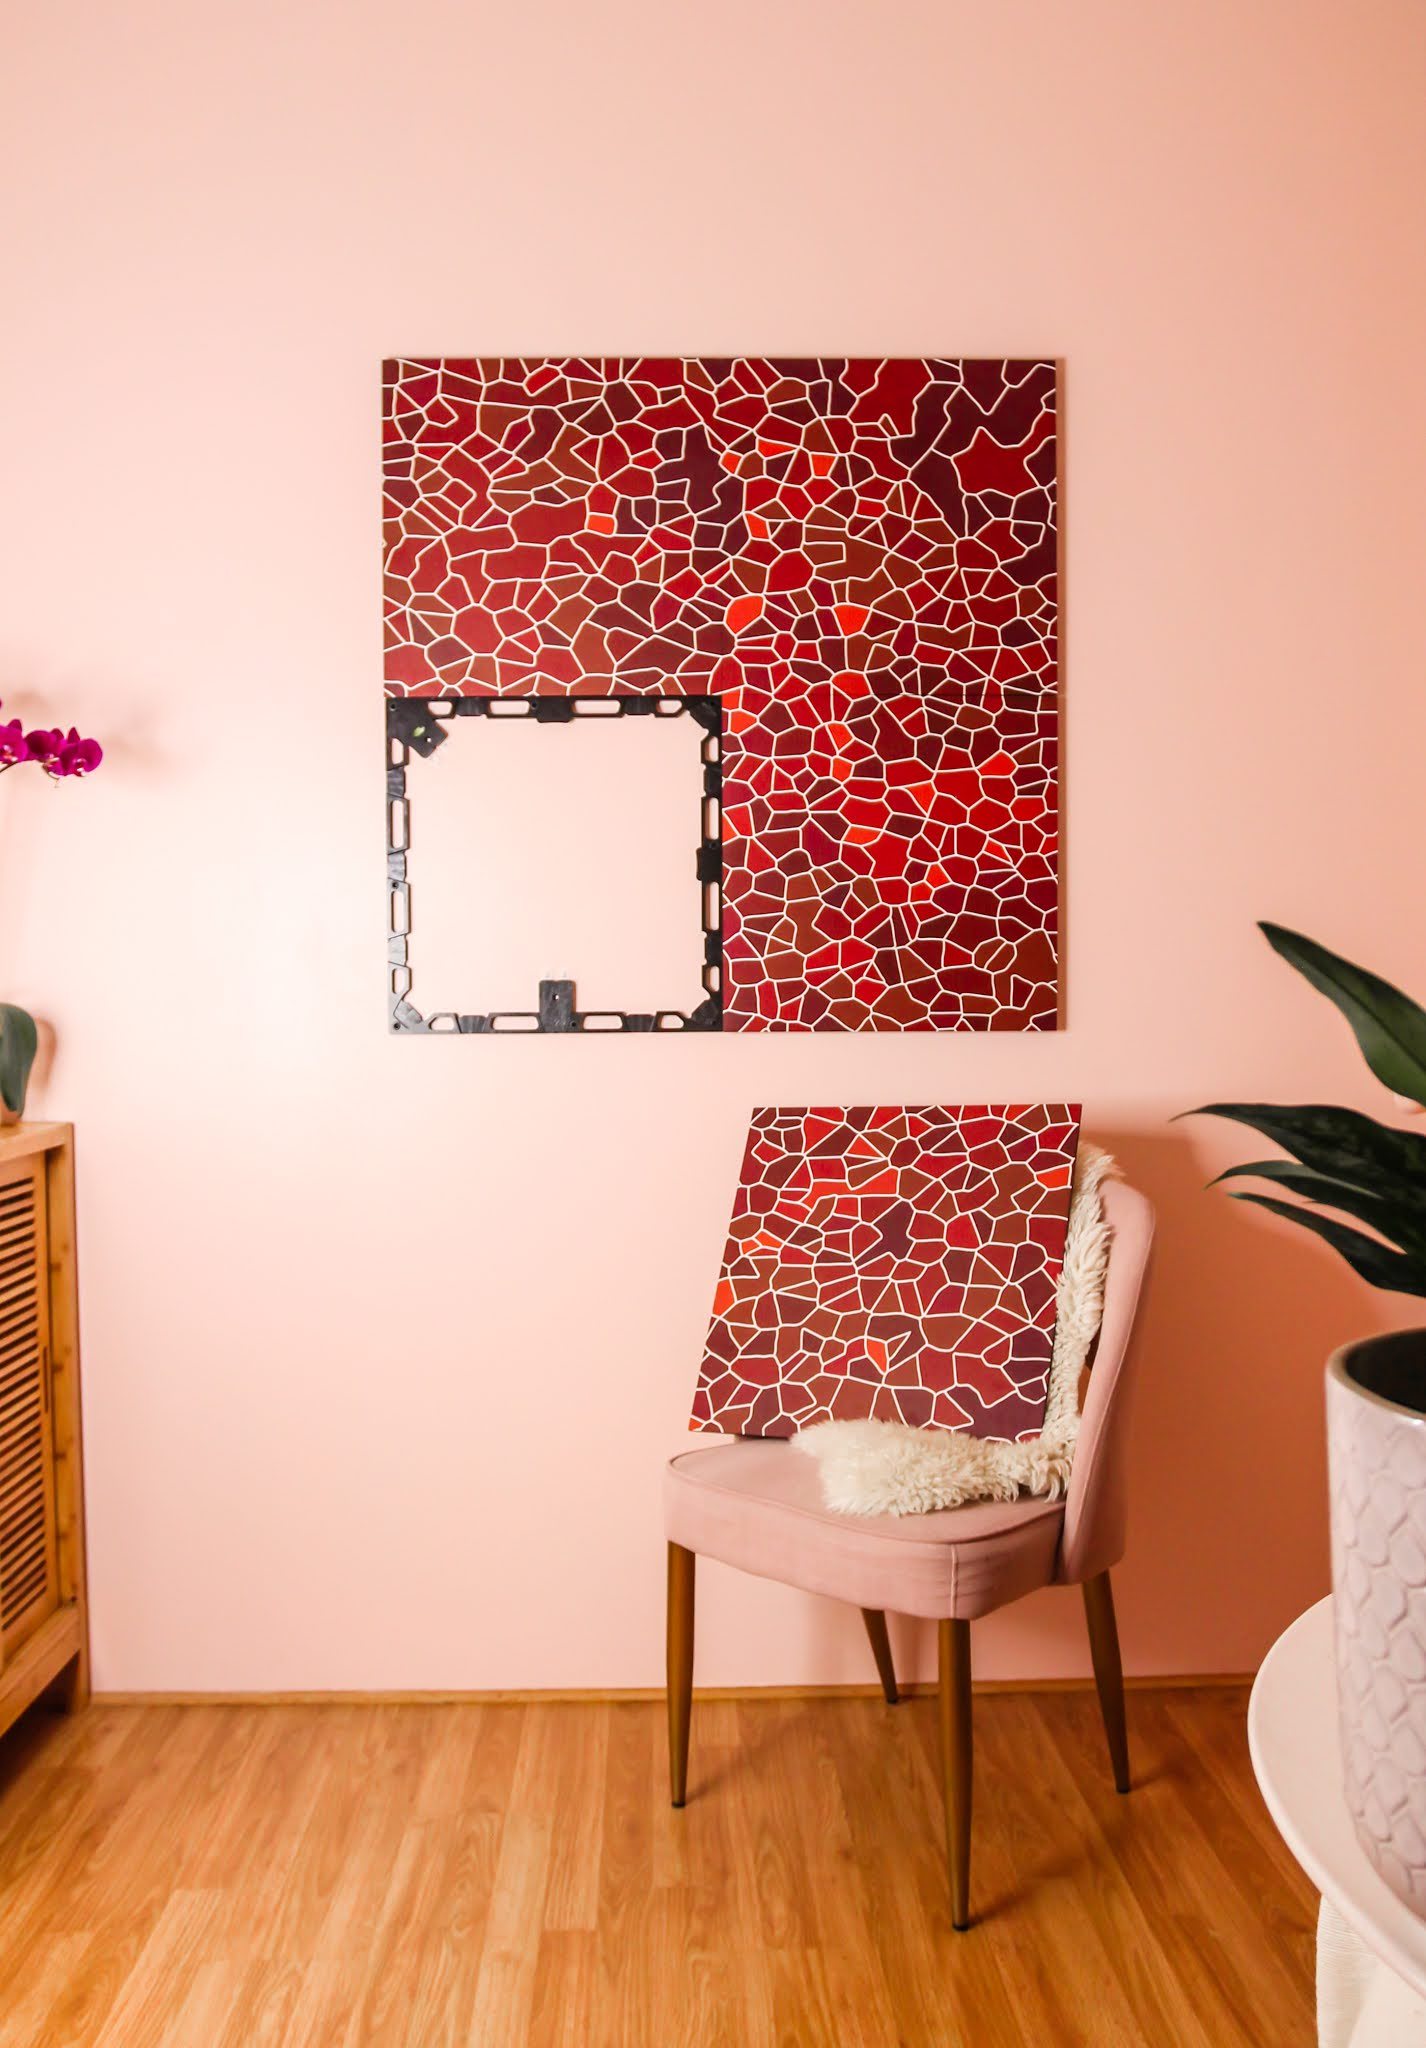 space kit modular wall decor // spacekit // wall decor // spacekit wall decor review // spacekit step by step process // spacekit mosaic design // red and pink room // wall decor inspo // small space living // small spaces inspo // pink room inspo //sustainable wall decor // sustainable home decor